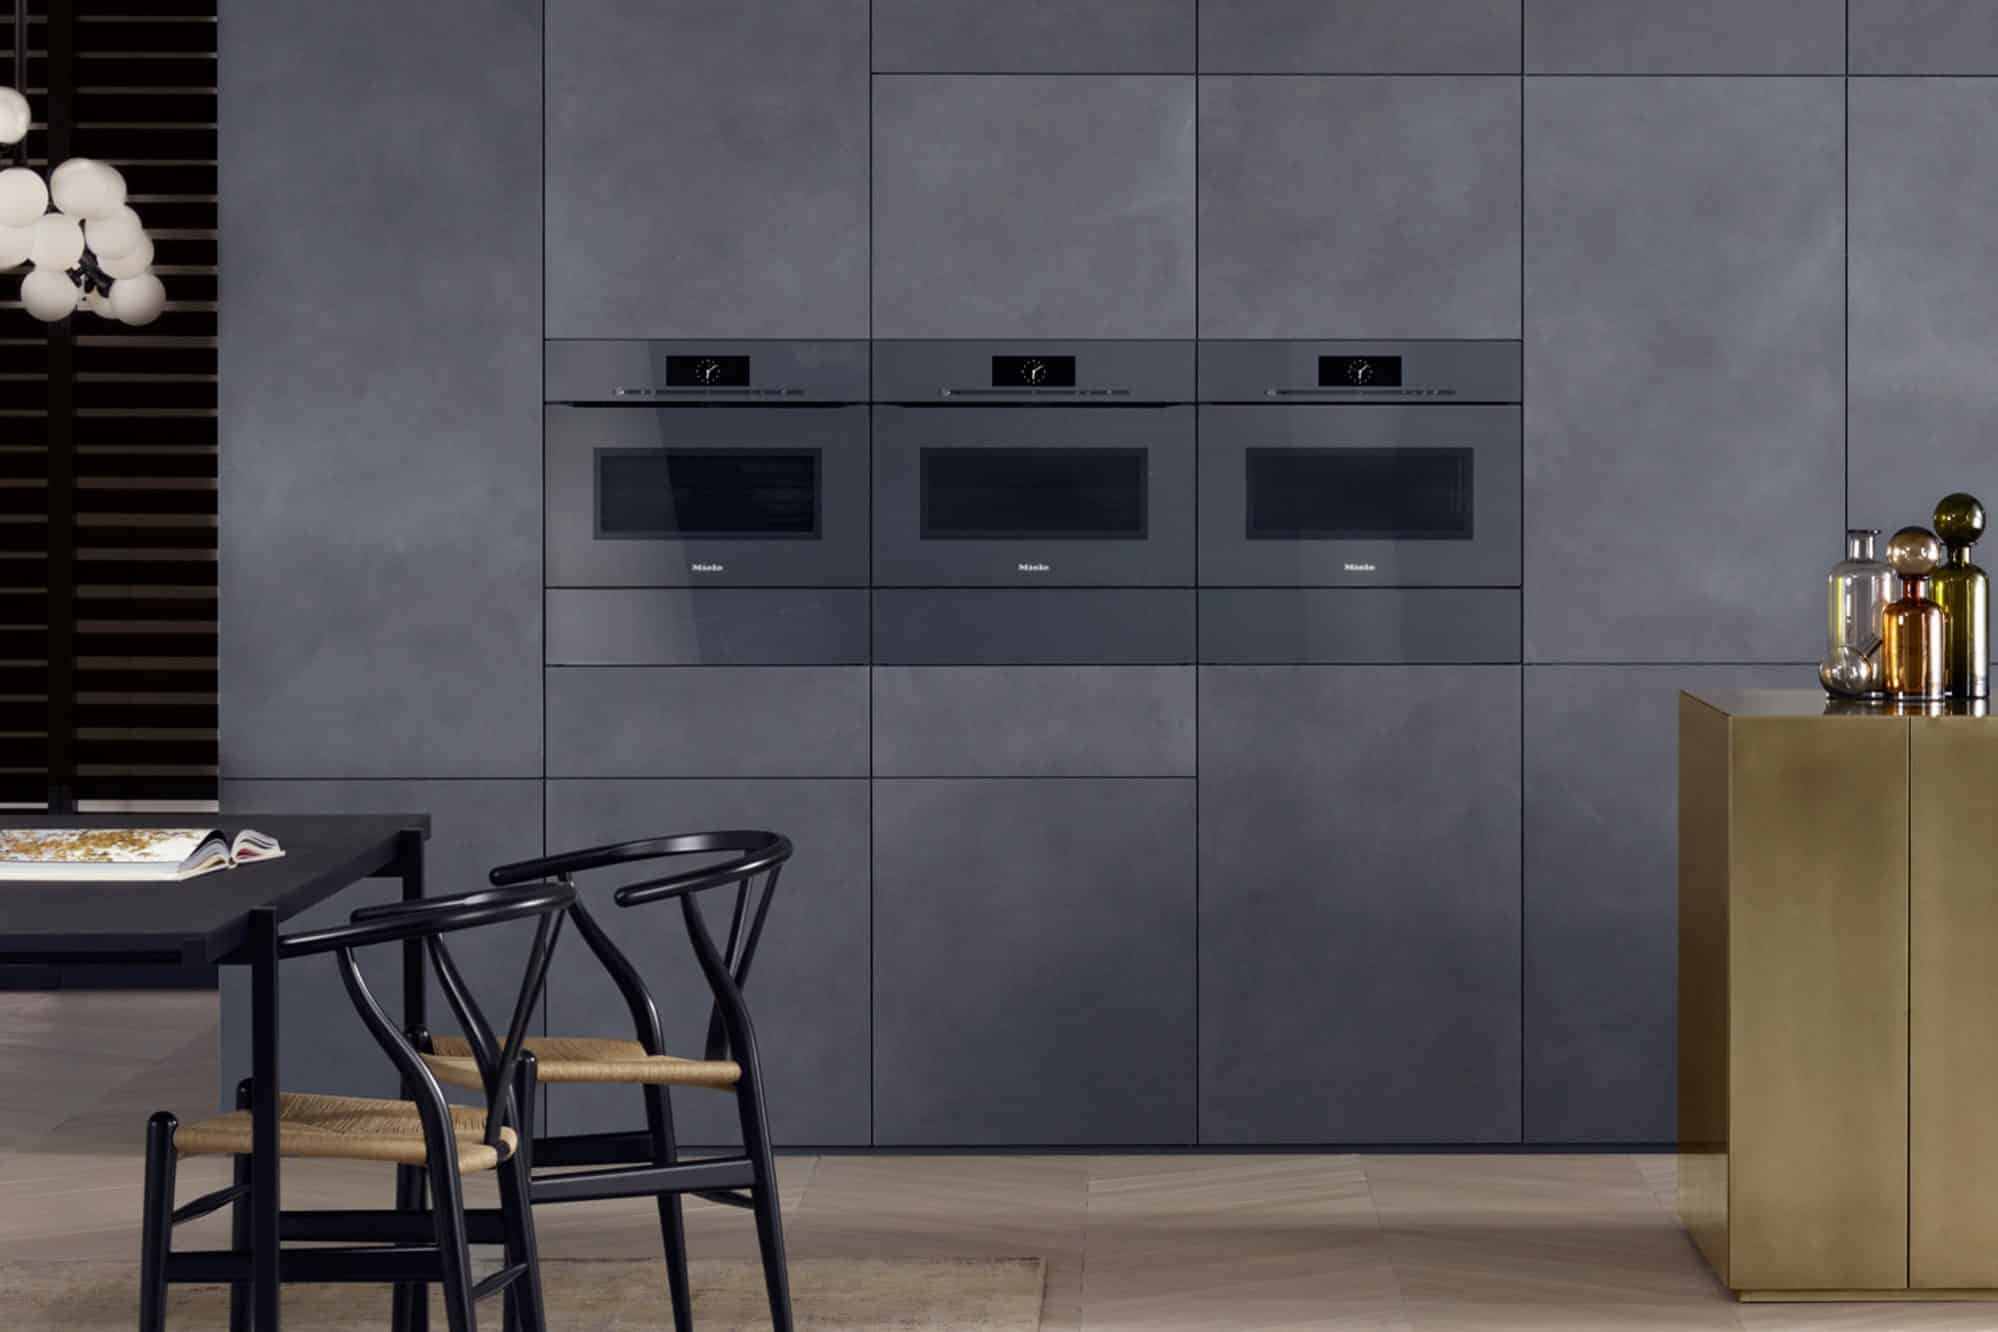 Miele Artline wall appliances